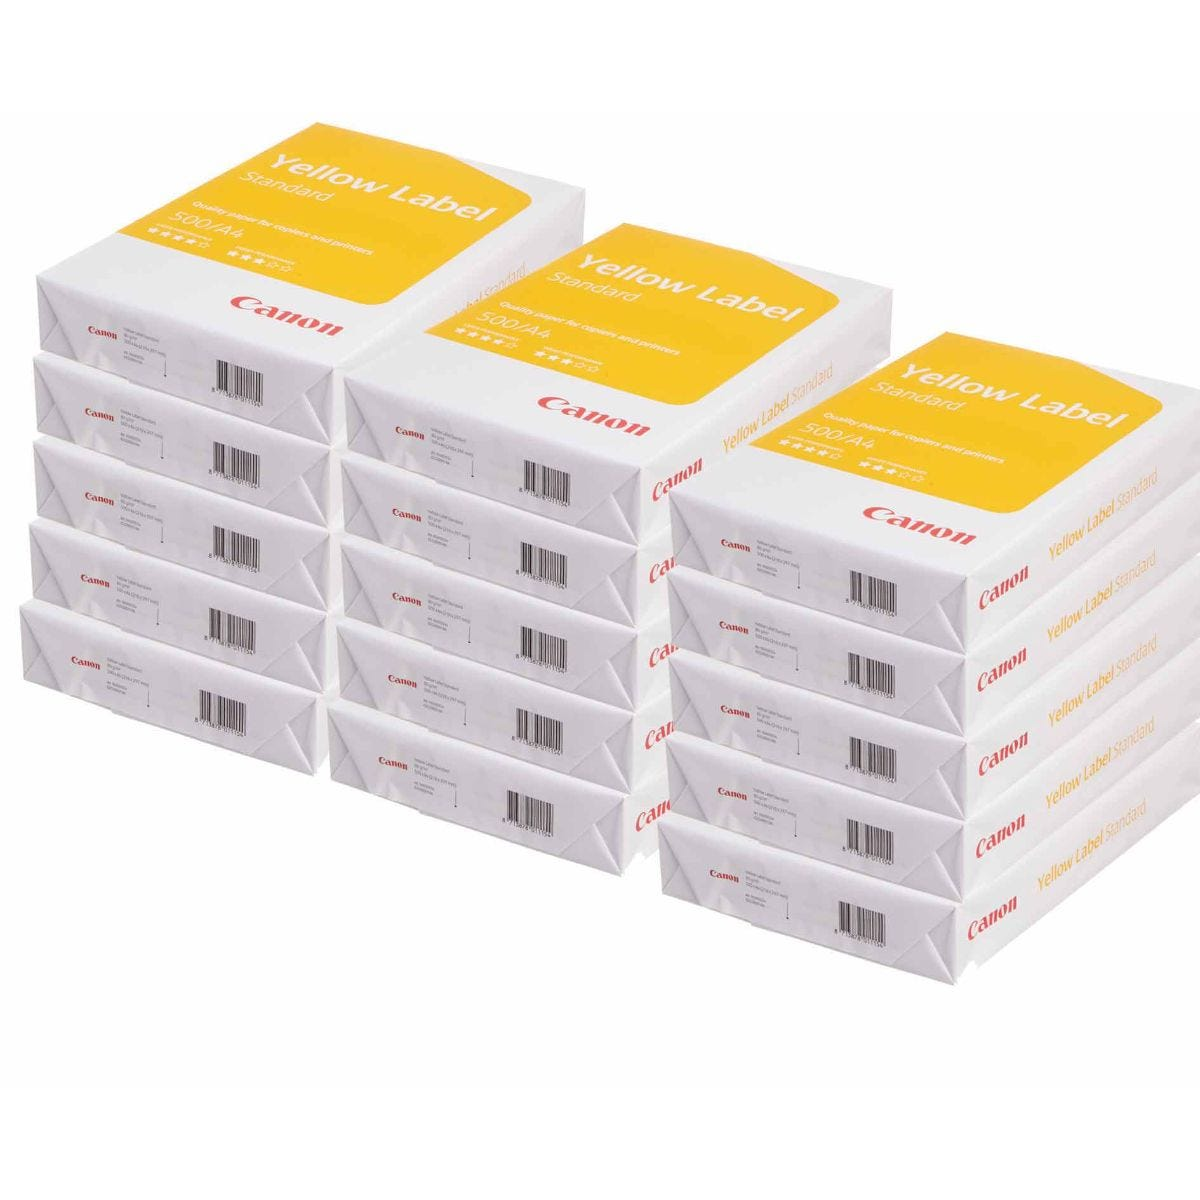 Canon Yellow Label Copier Paper A4 Pack of 15 Reams 80gsm